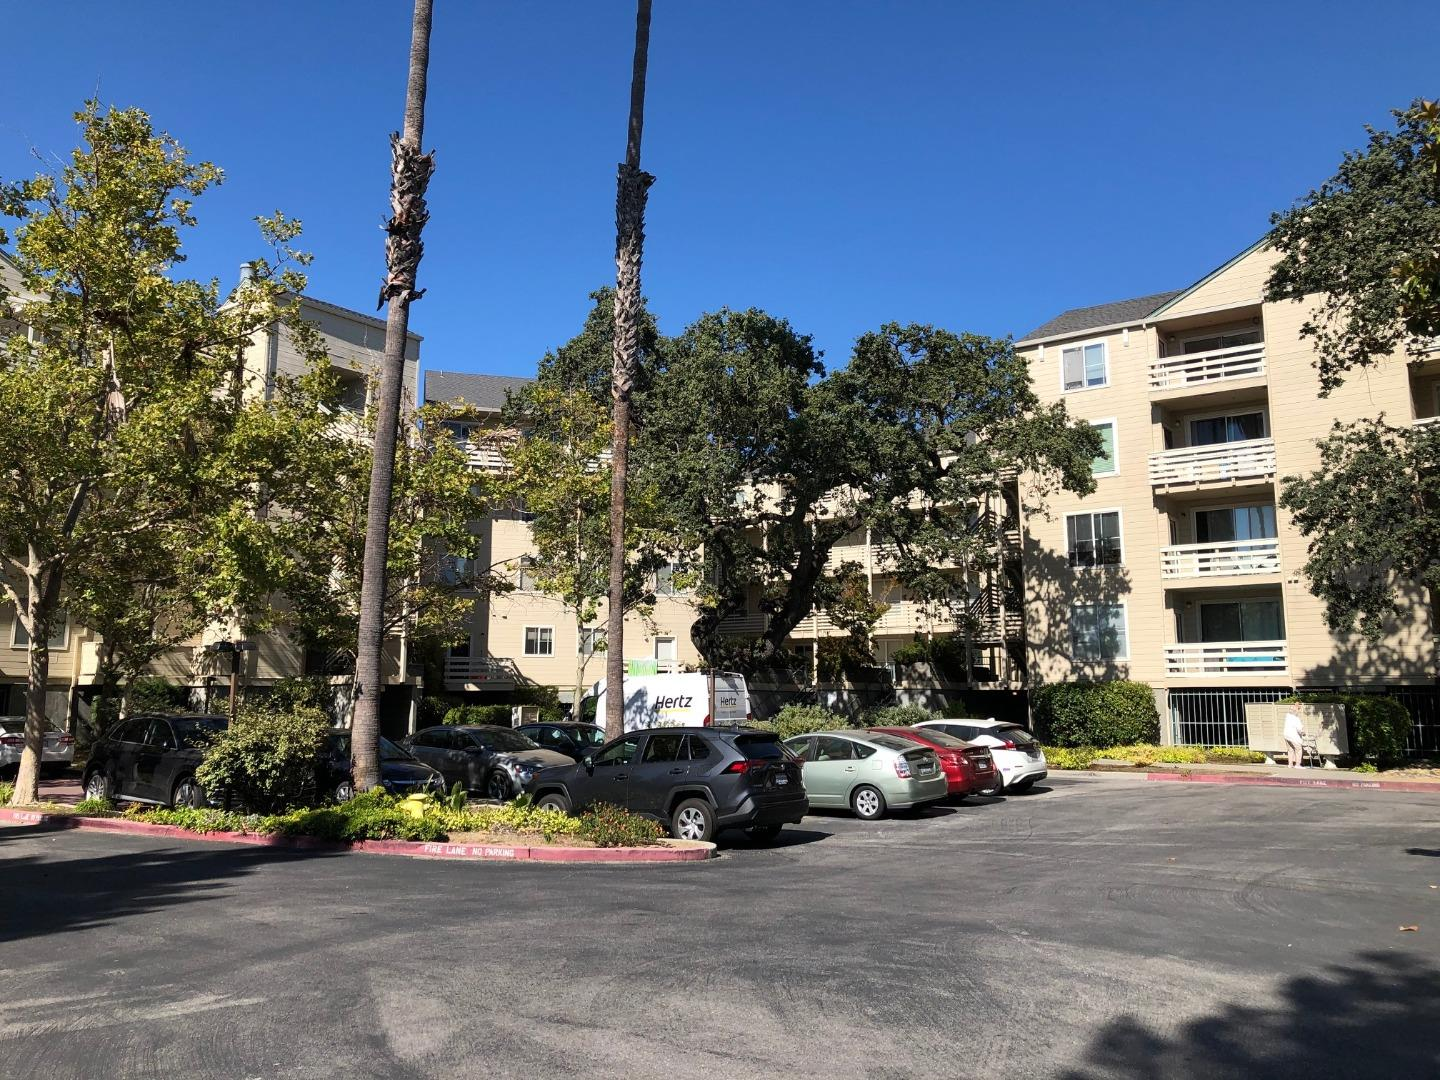 Conveniently located in heart of Sunnyvale, Walking distance to bus stops, shops, restaurants and Sunken Garden Golf Course, yet quiet and private End unit!! Minutes to Sunnyvale Community Center, Ponderosa Park, Apple Campus, Major Tech Companies, Downtown Sunnyvale with easy access to Lawrence Expressway, Central Expressway, and Highways 85/280.   This gorgeous condo features two bedrooms, two full bathrooms, wonderful open floor plan that a spacious living room, dining area, and large kitchen with bar seating.  Large master bedroom with en-suite bathroom, walk-in closet, and access to the patio area. Spacious second bedroom, second bathroom and spacious in-unit laundry room.   The complex offers a pool, spa, clubhouse, One assigned parking (with storage space) in the underground garage, plus ample guest parking spaces throughout complex*  Completion of the balcony construction project before September by HOA.